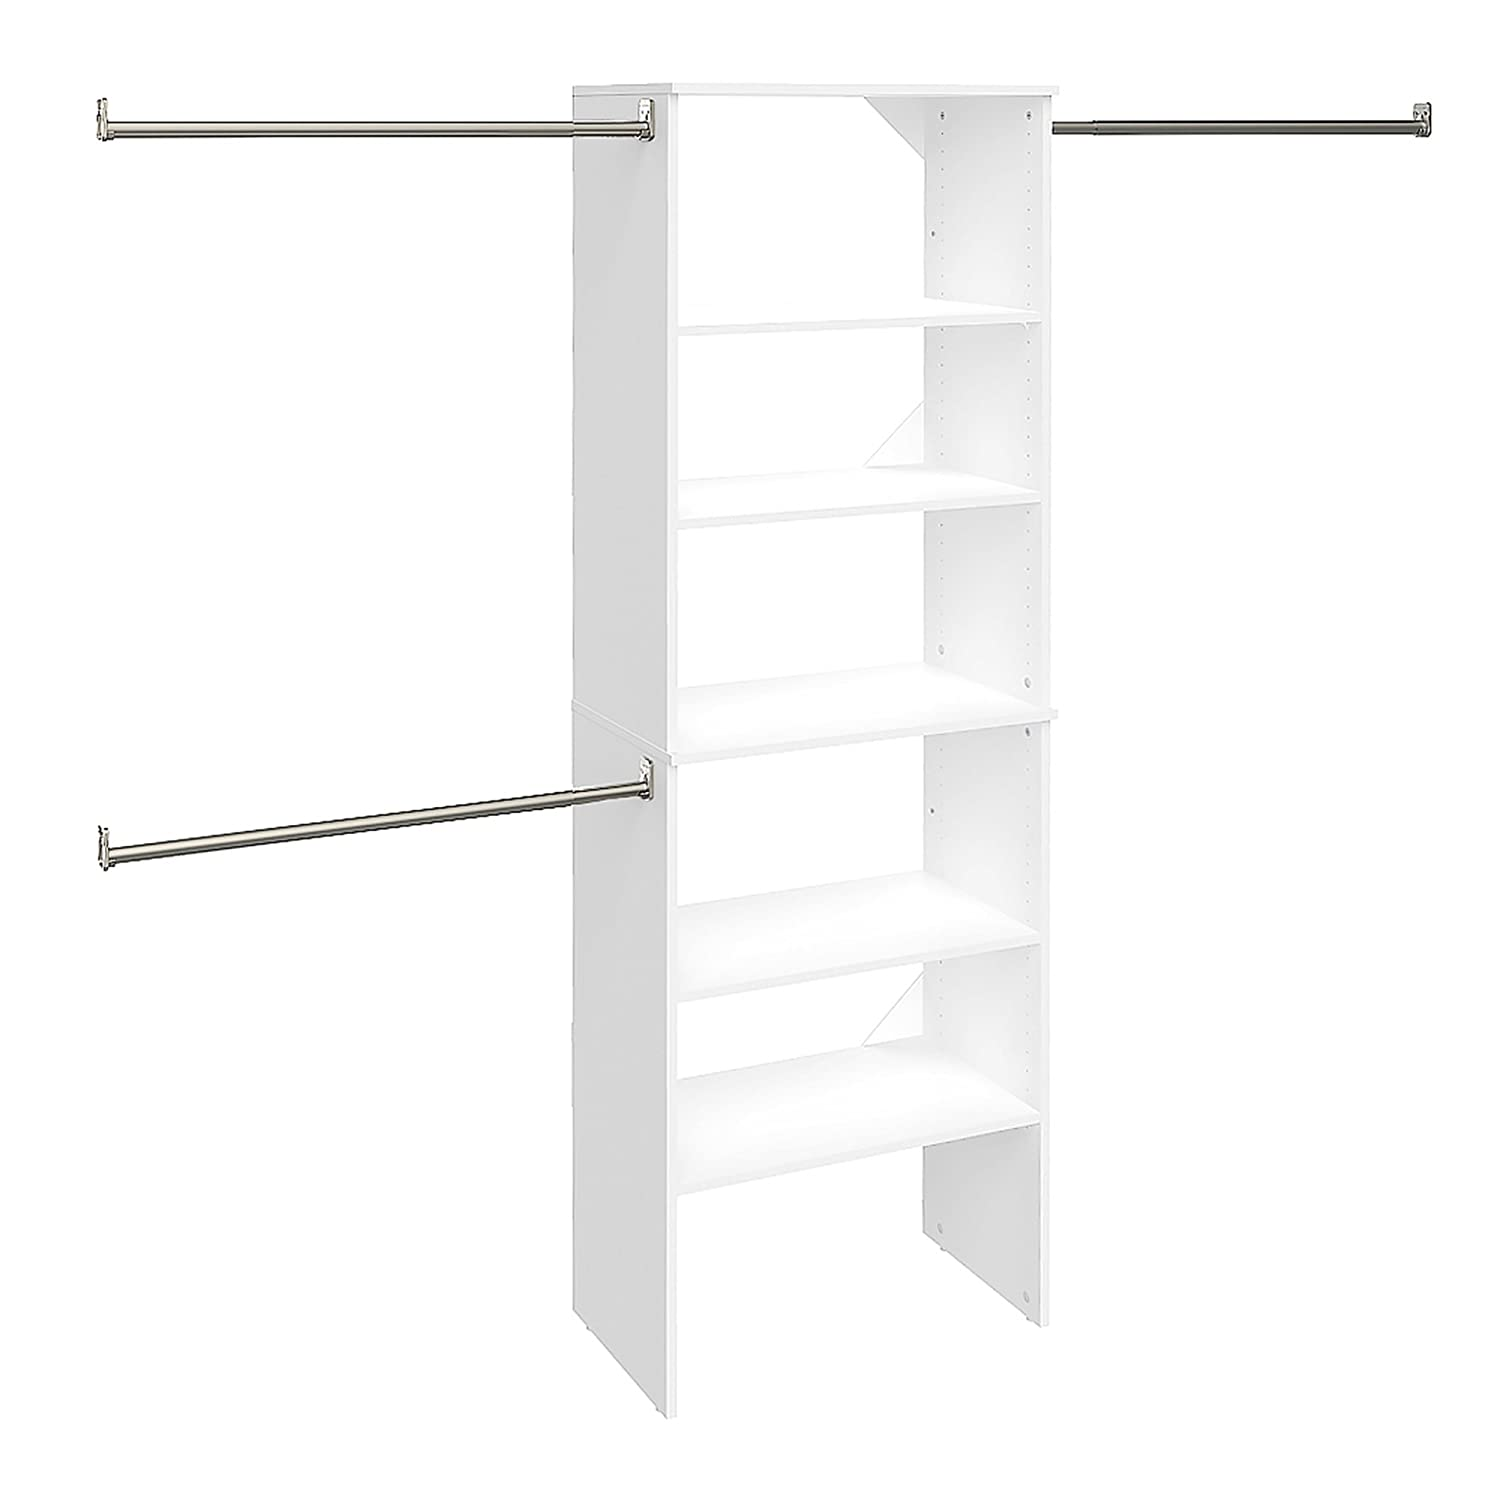 "Closetmaid 25"" SuiteSymphony Starter Tower Kit - a tower of white cubbies for the laundry room!"